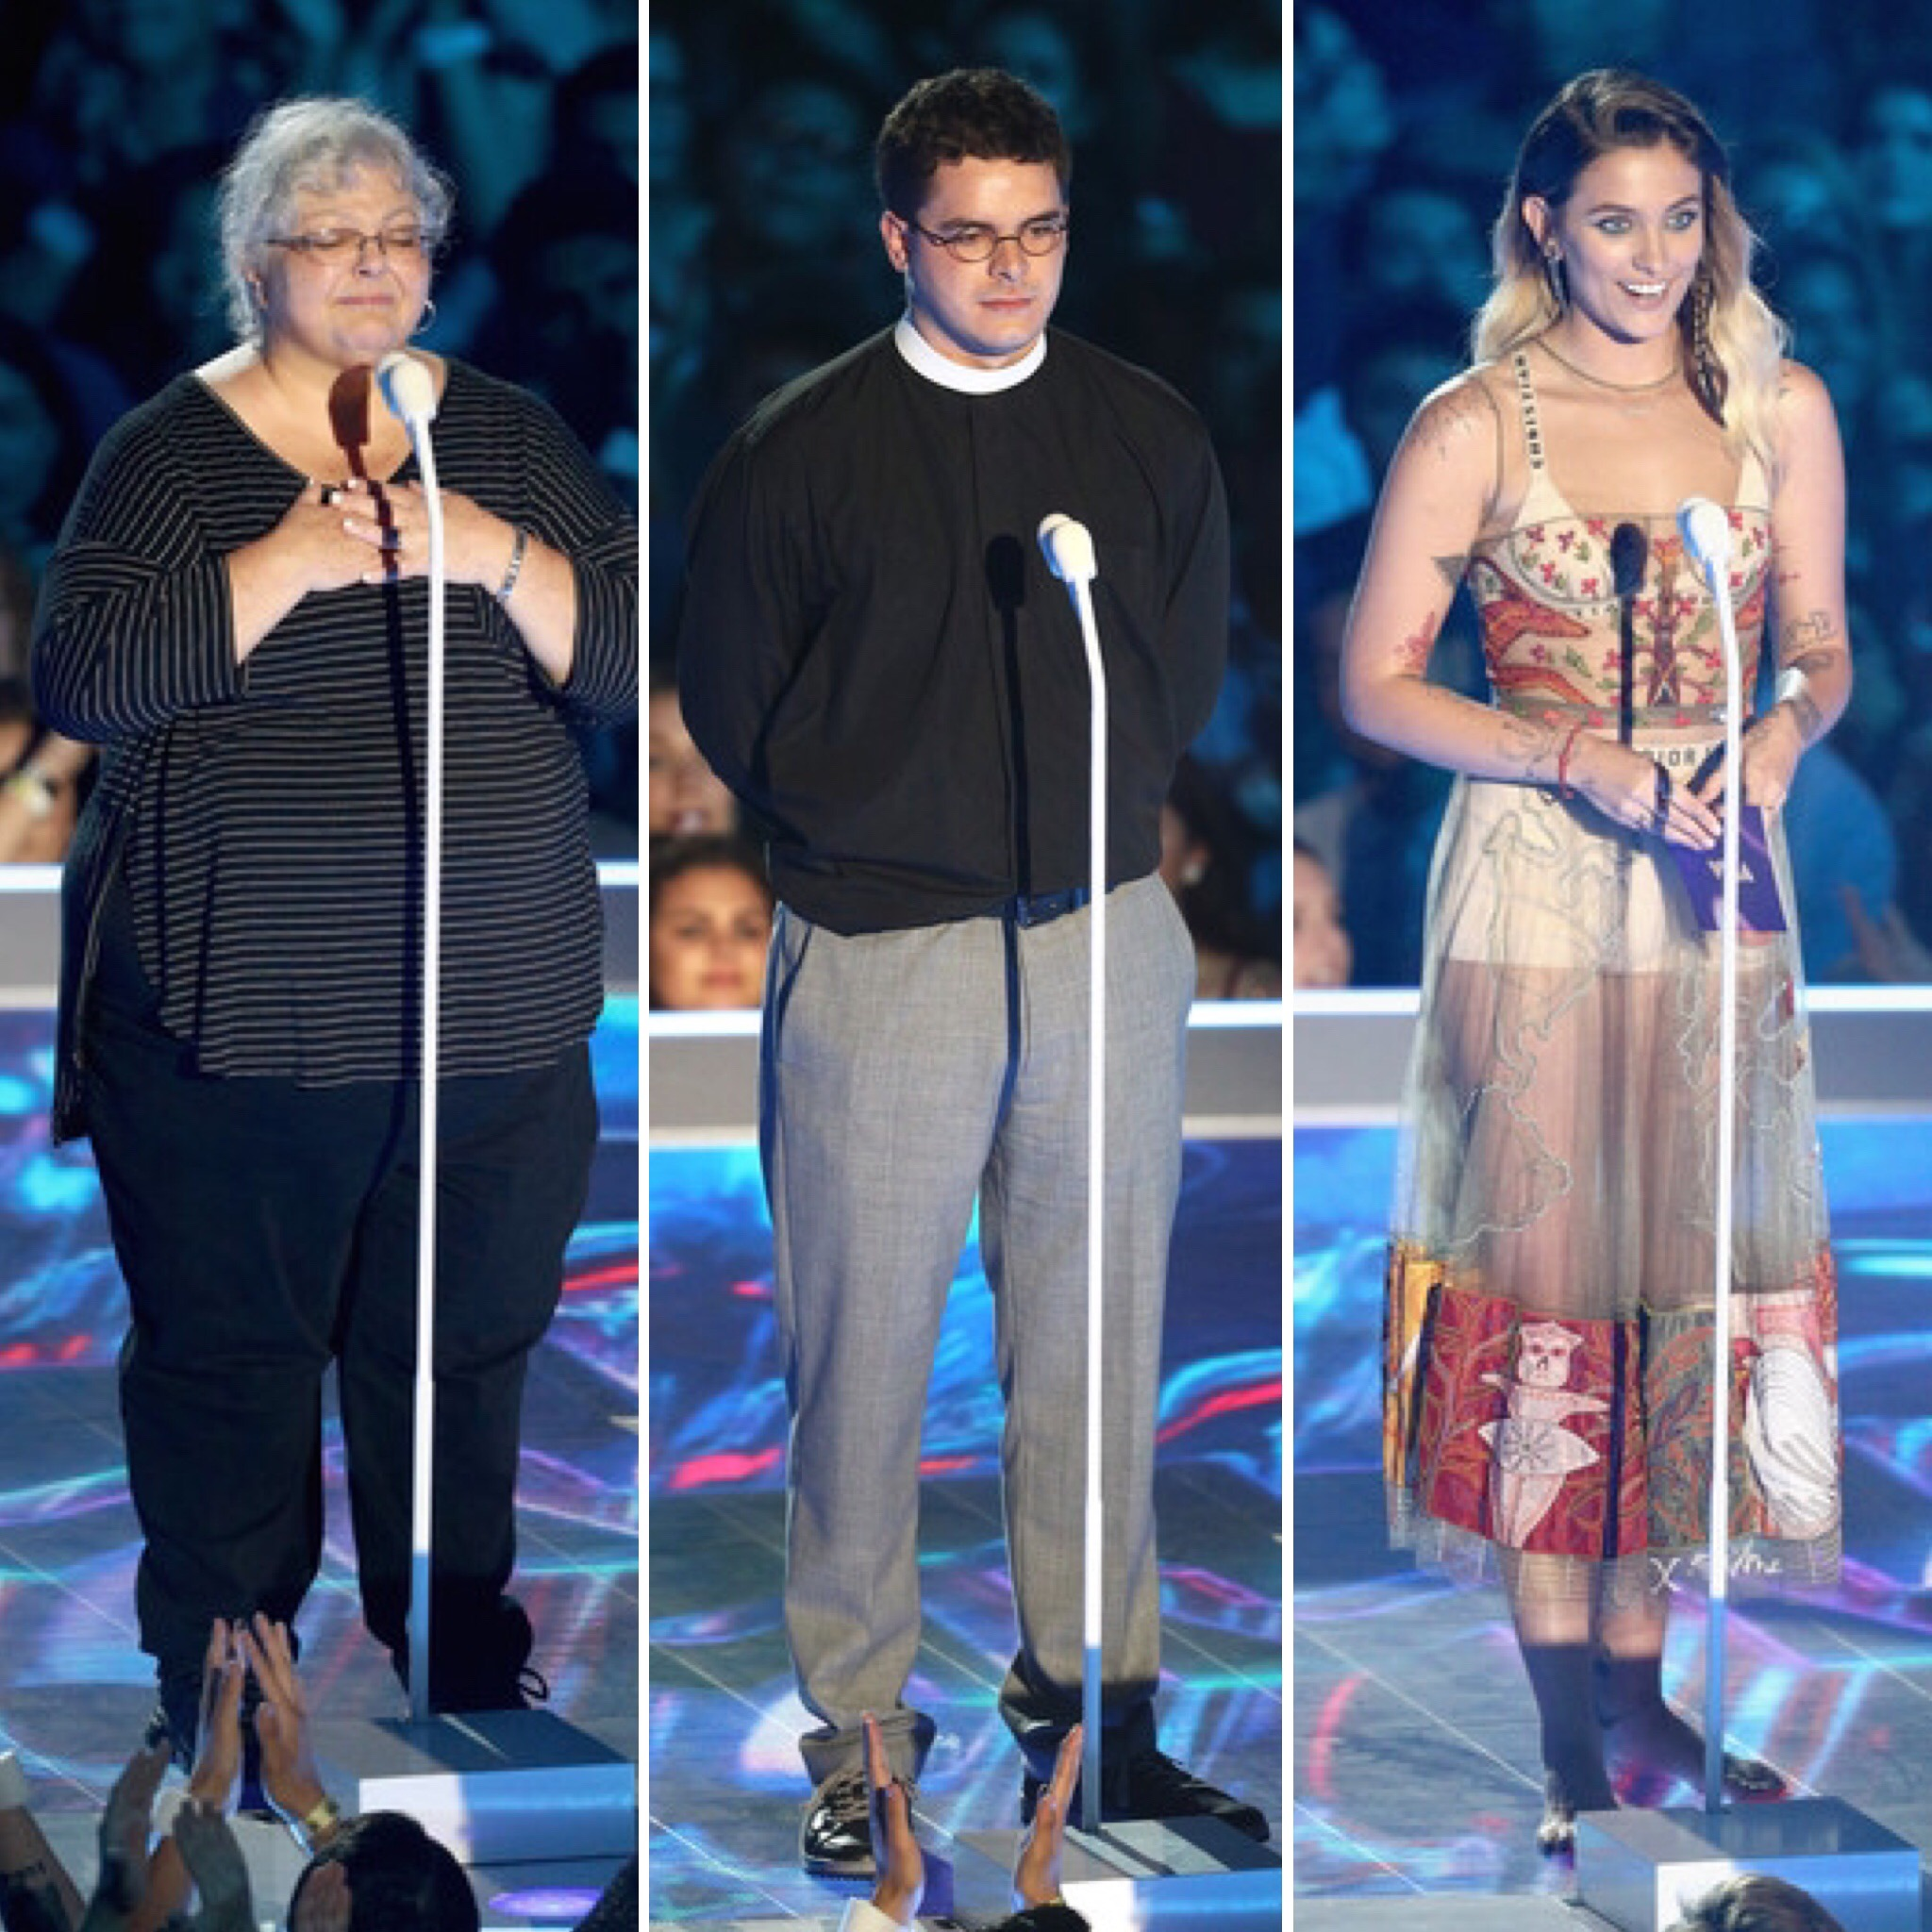 (L-R) Susan Dro, Robert Lee IV, Paris Jackson speak onstage during the 2017 MTV Video Music Awards at The Forum on August 27, 2017 in Inglewood, California.